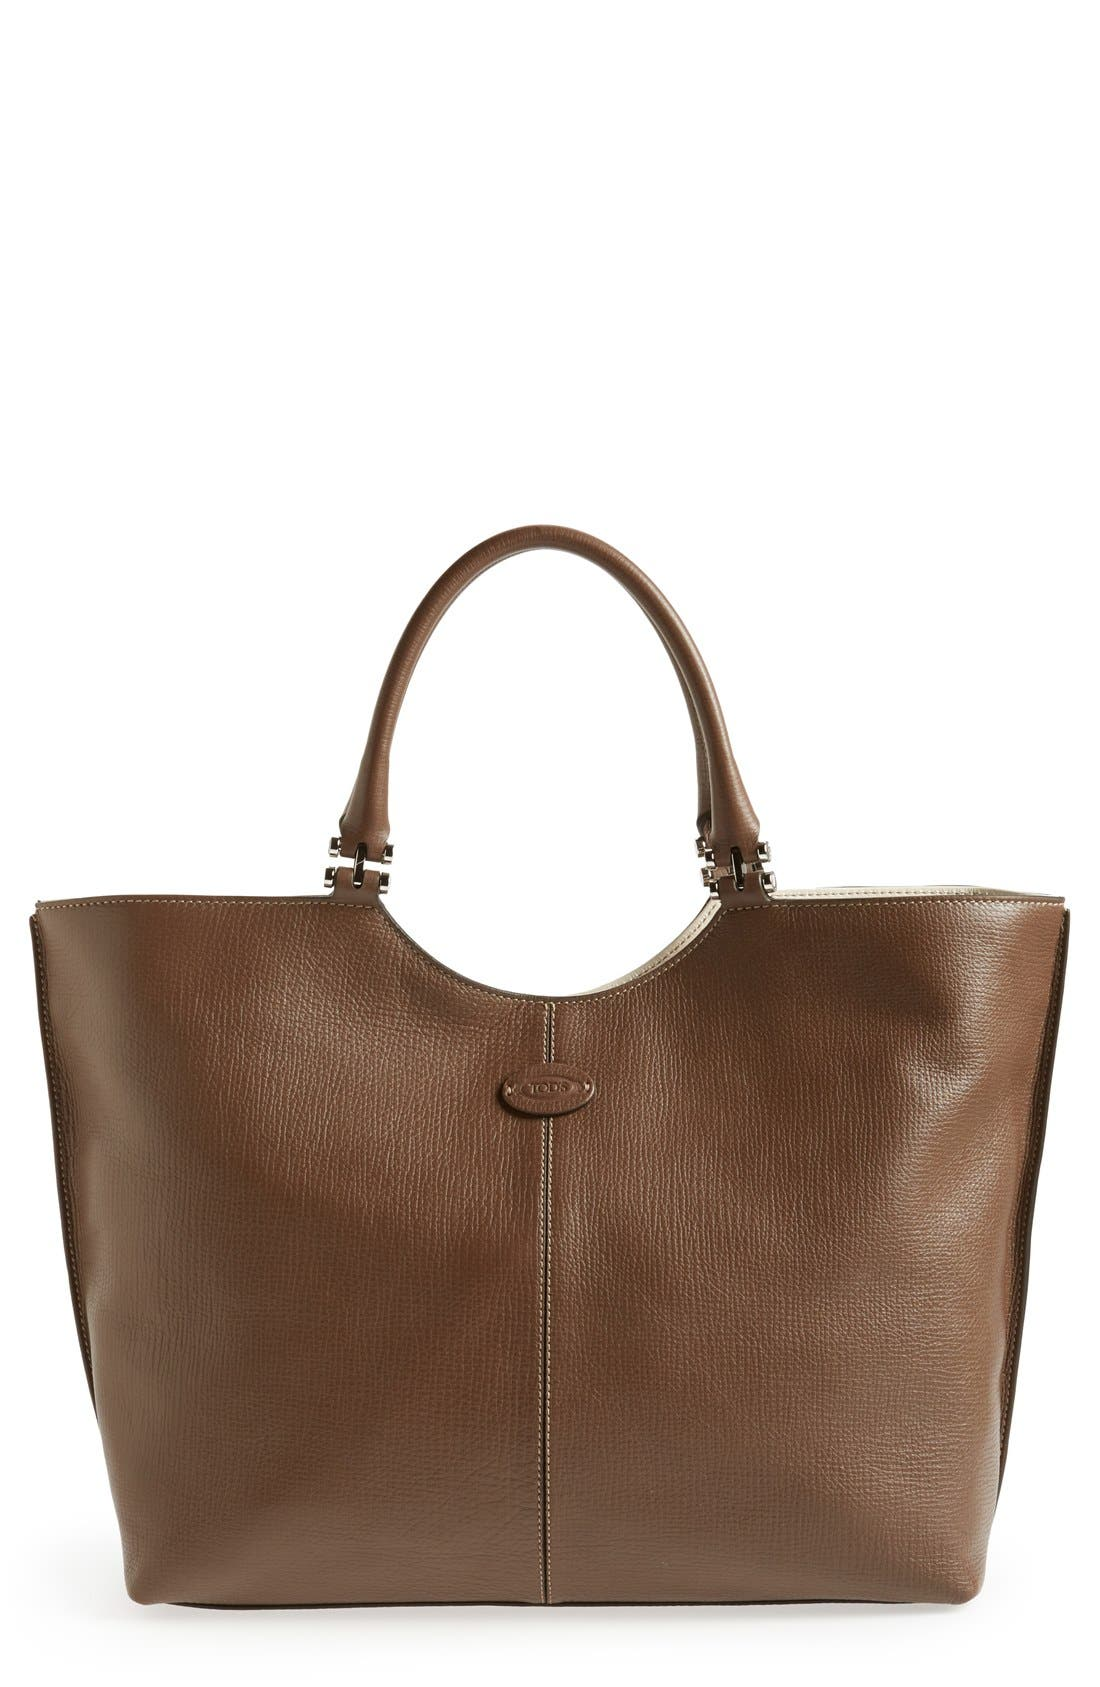 Main Image - Tod's 'Alu - Grande' Leather Shopper